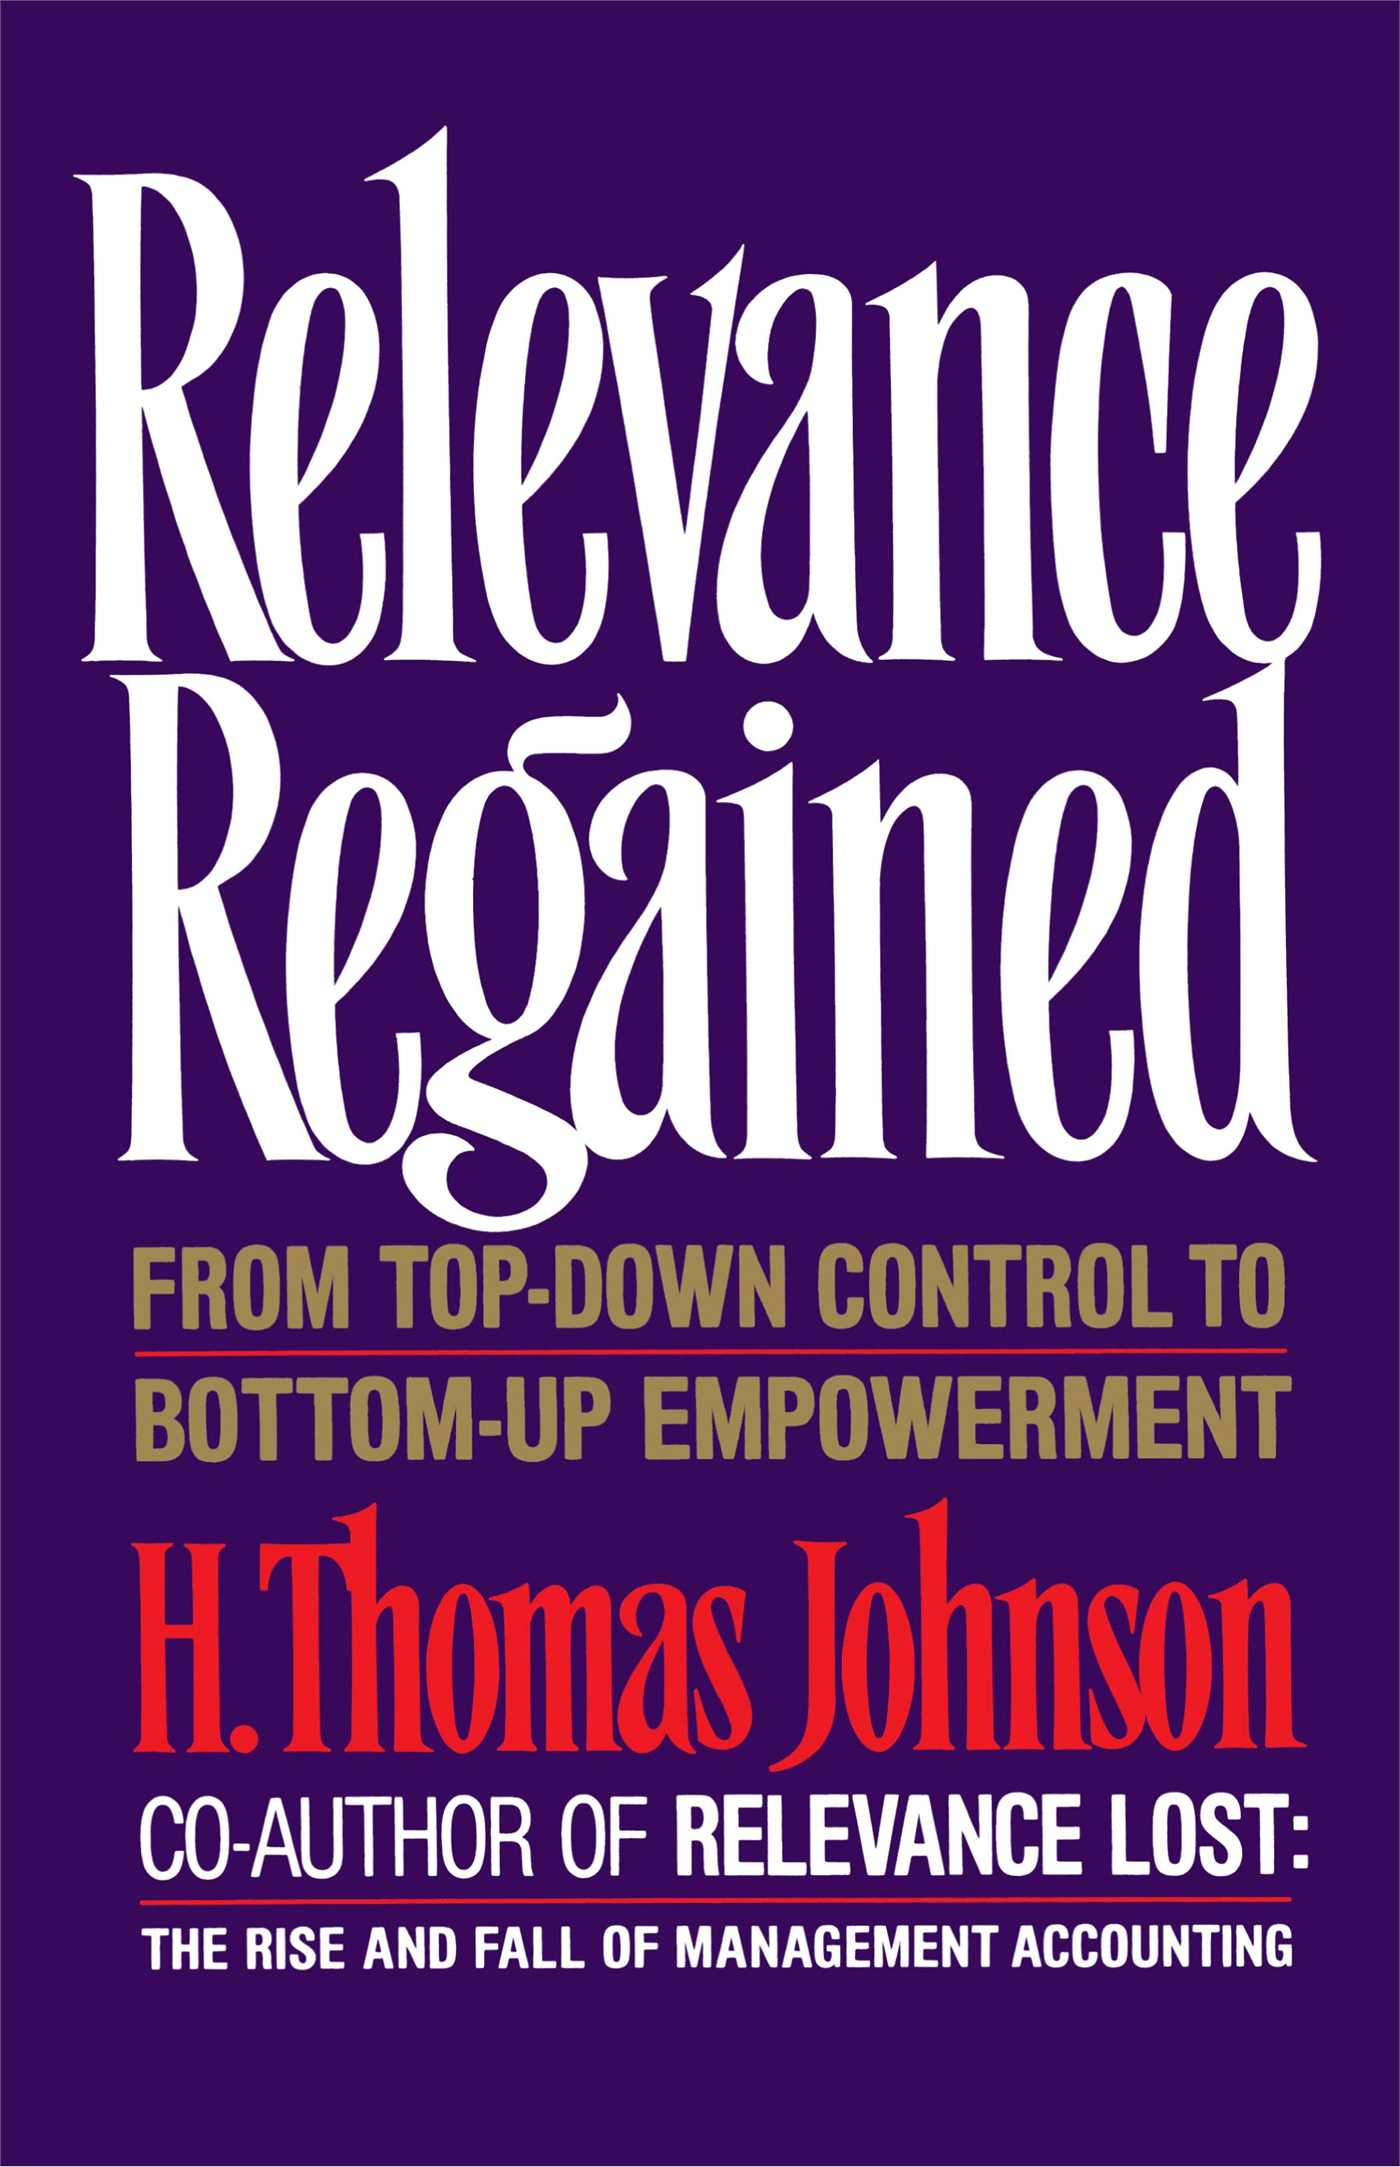 Relevance-regained-9780743236270_hr